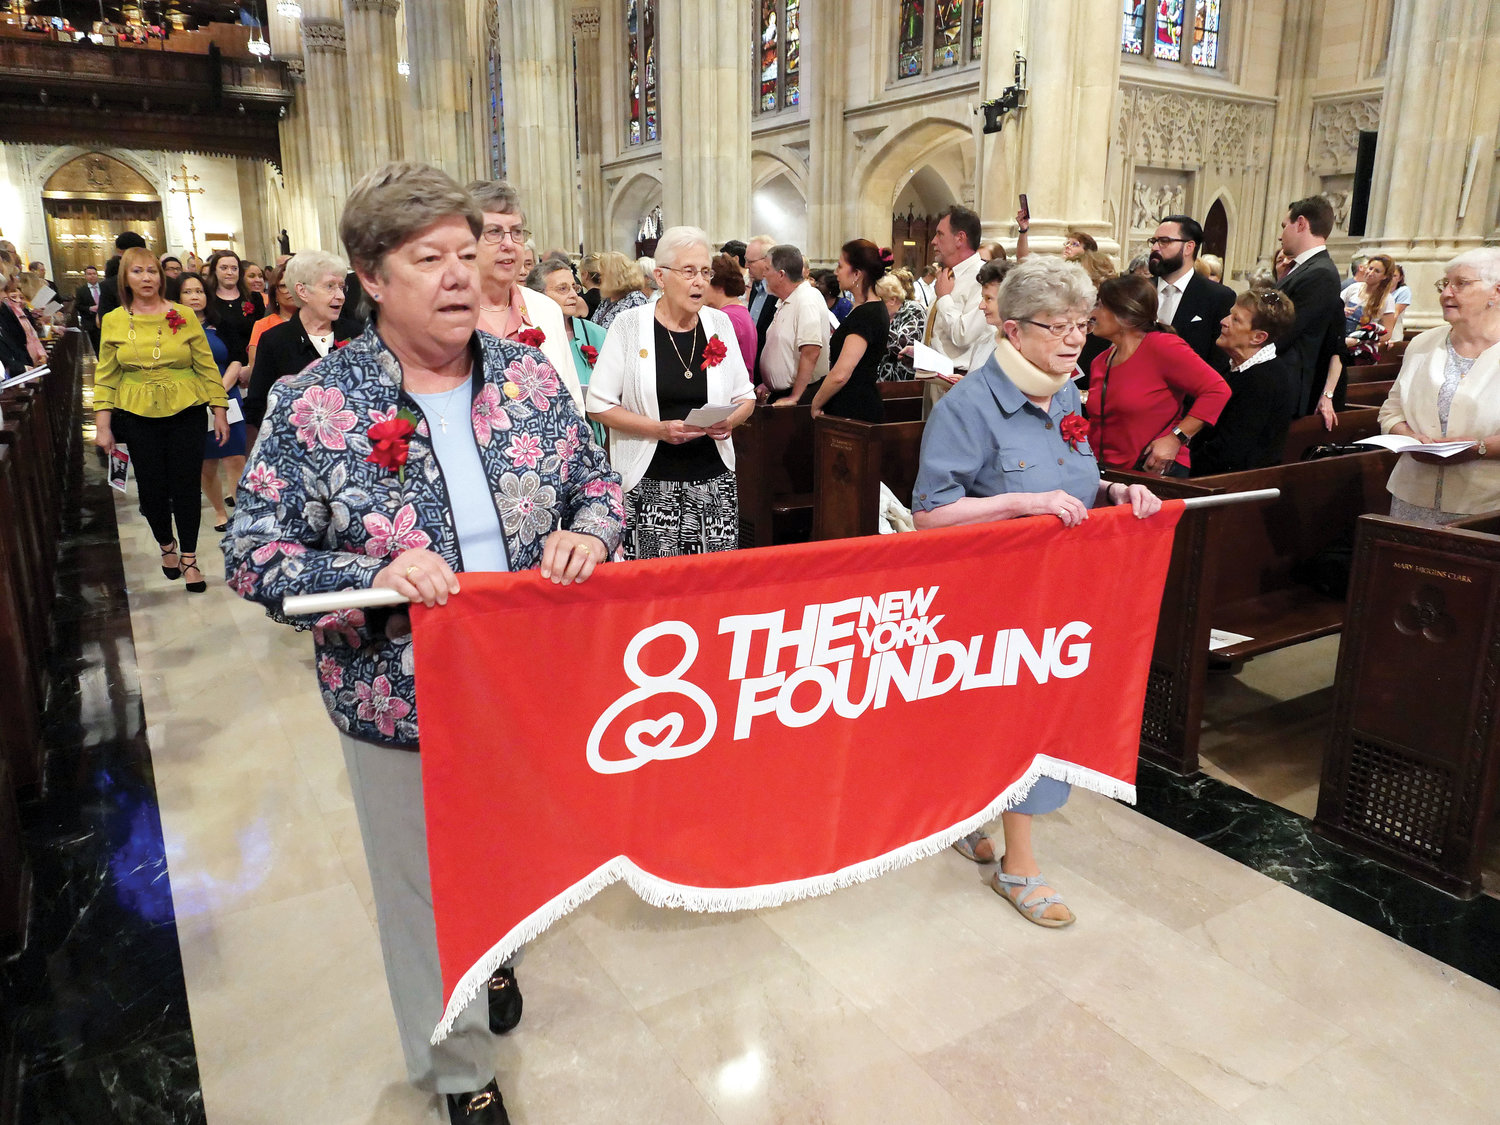 Sisters of Charity Donna Dodge, S.C., left, and Jane Iannucelli, S.C., carry a banner in procession for a Mass Cardinal Dolan celebrated in honor of the New York Foundling's century and a half of service June 6 at St. Patrick's Cathedral.